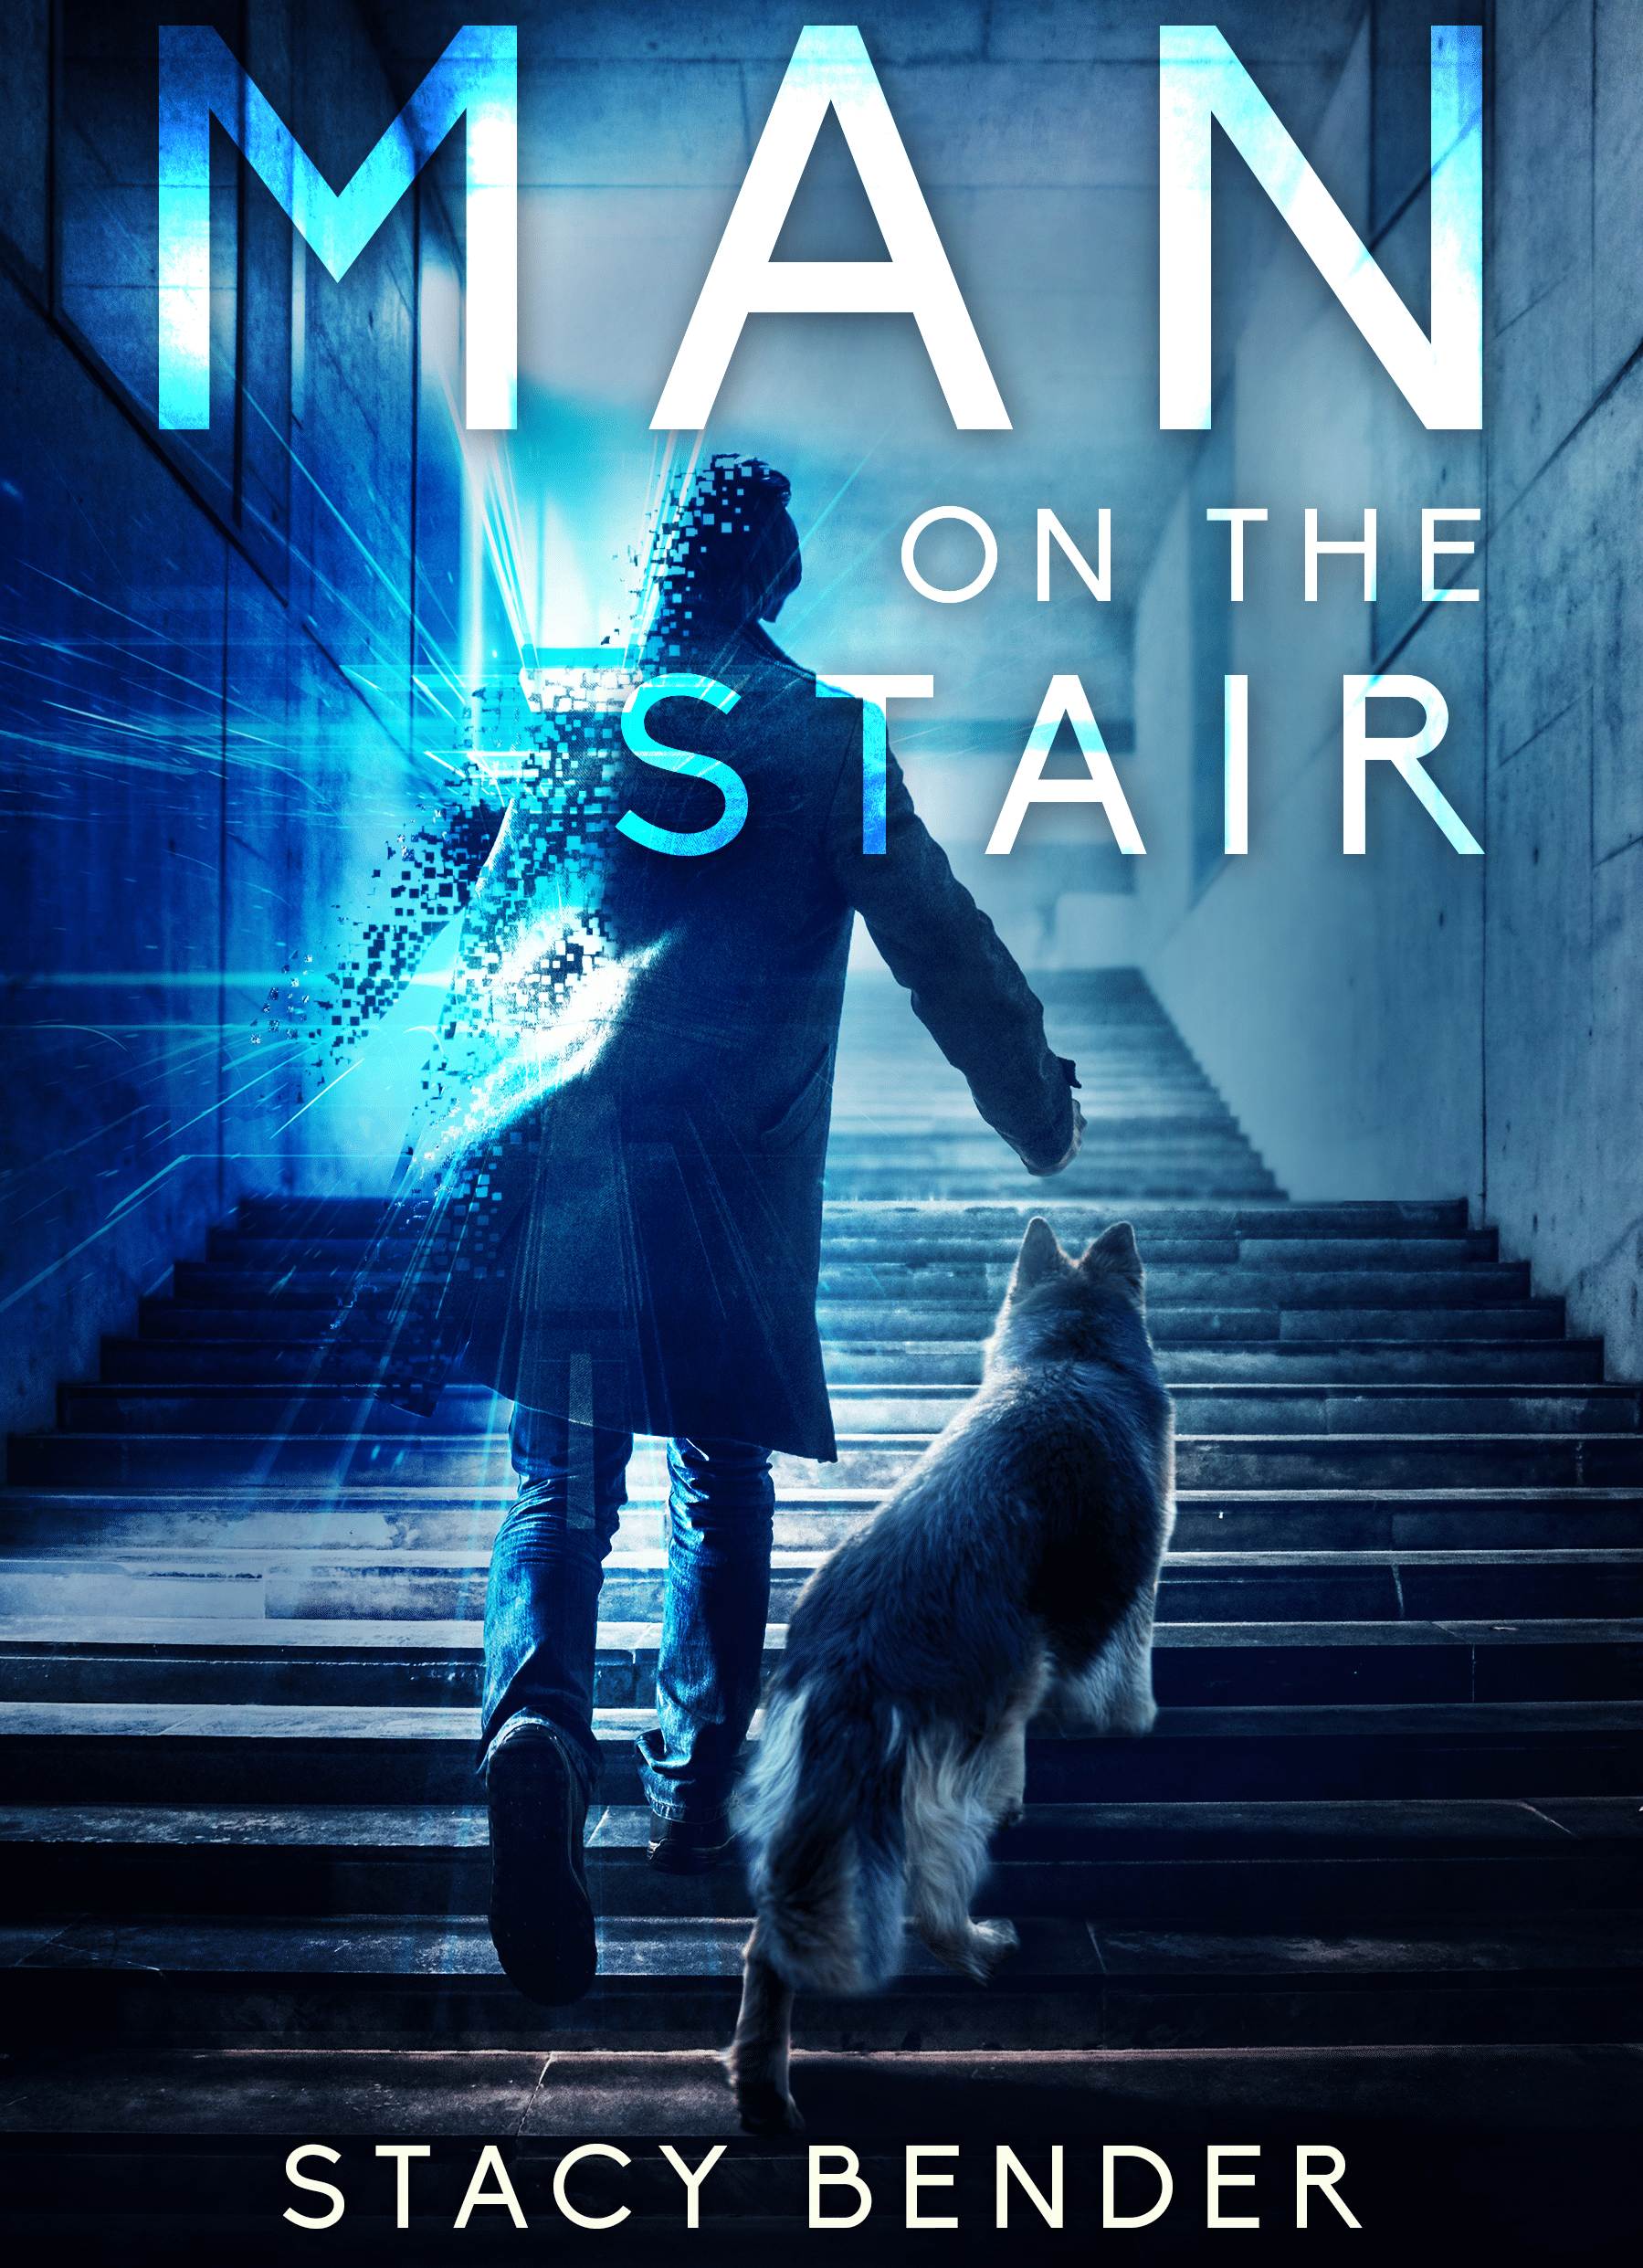 Man on the Stair